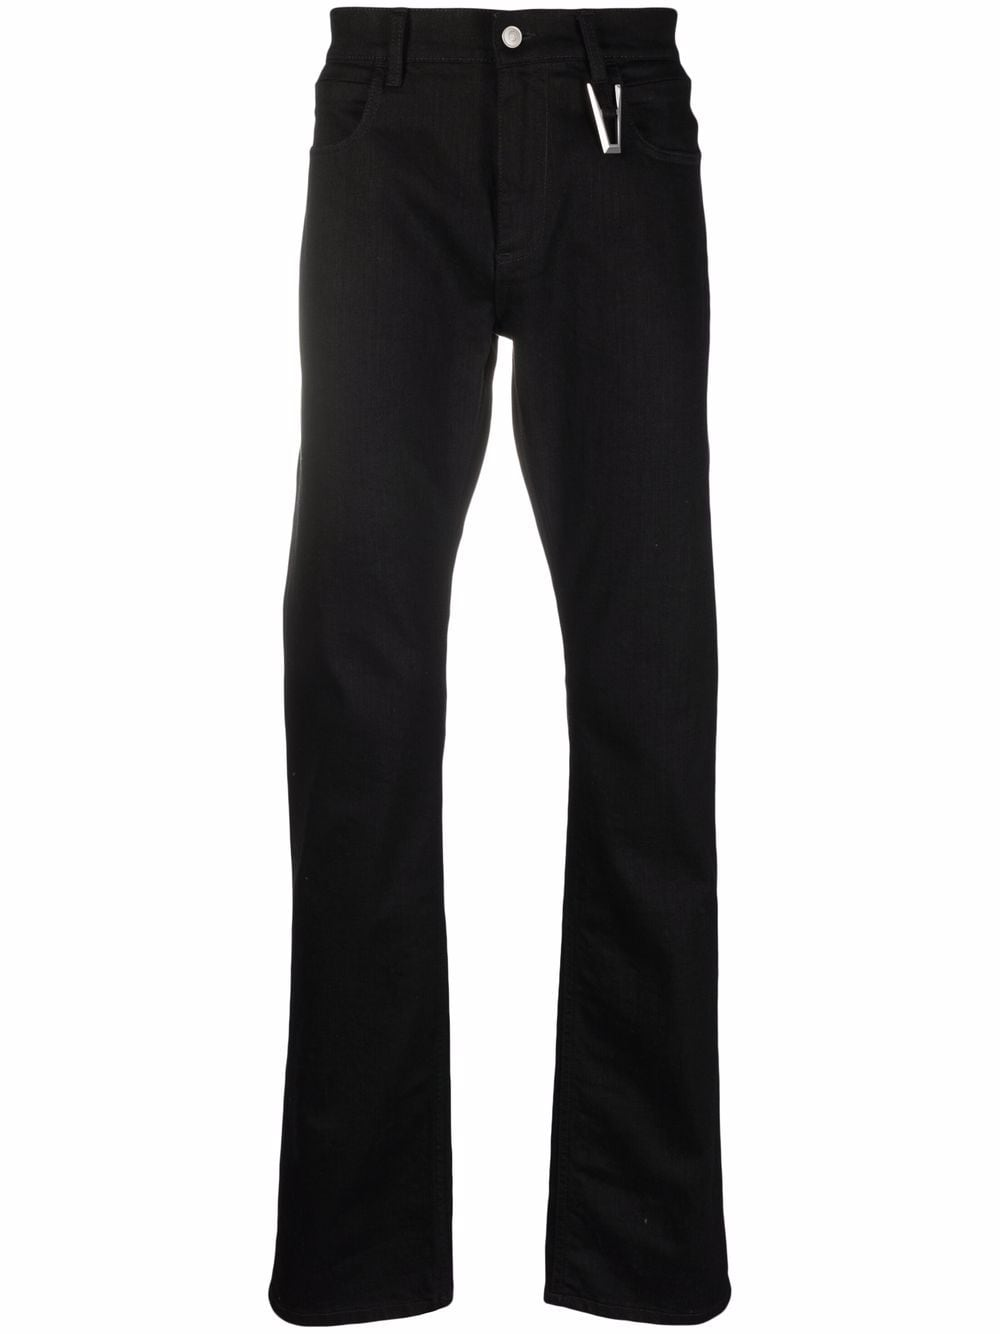 straight jeans man black in cotton 1017 ALYX 9SM   Jeans   AAMPA0212FA02BLK001